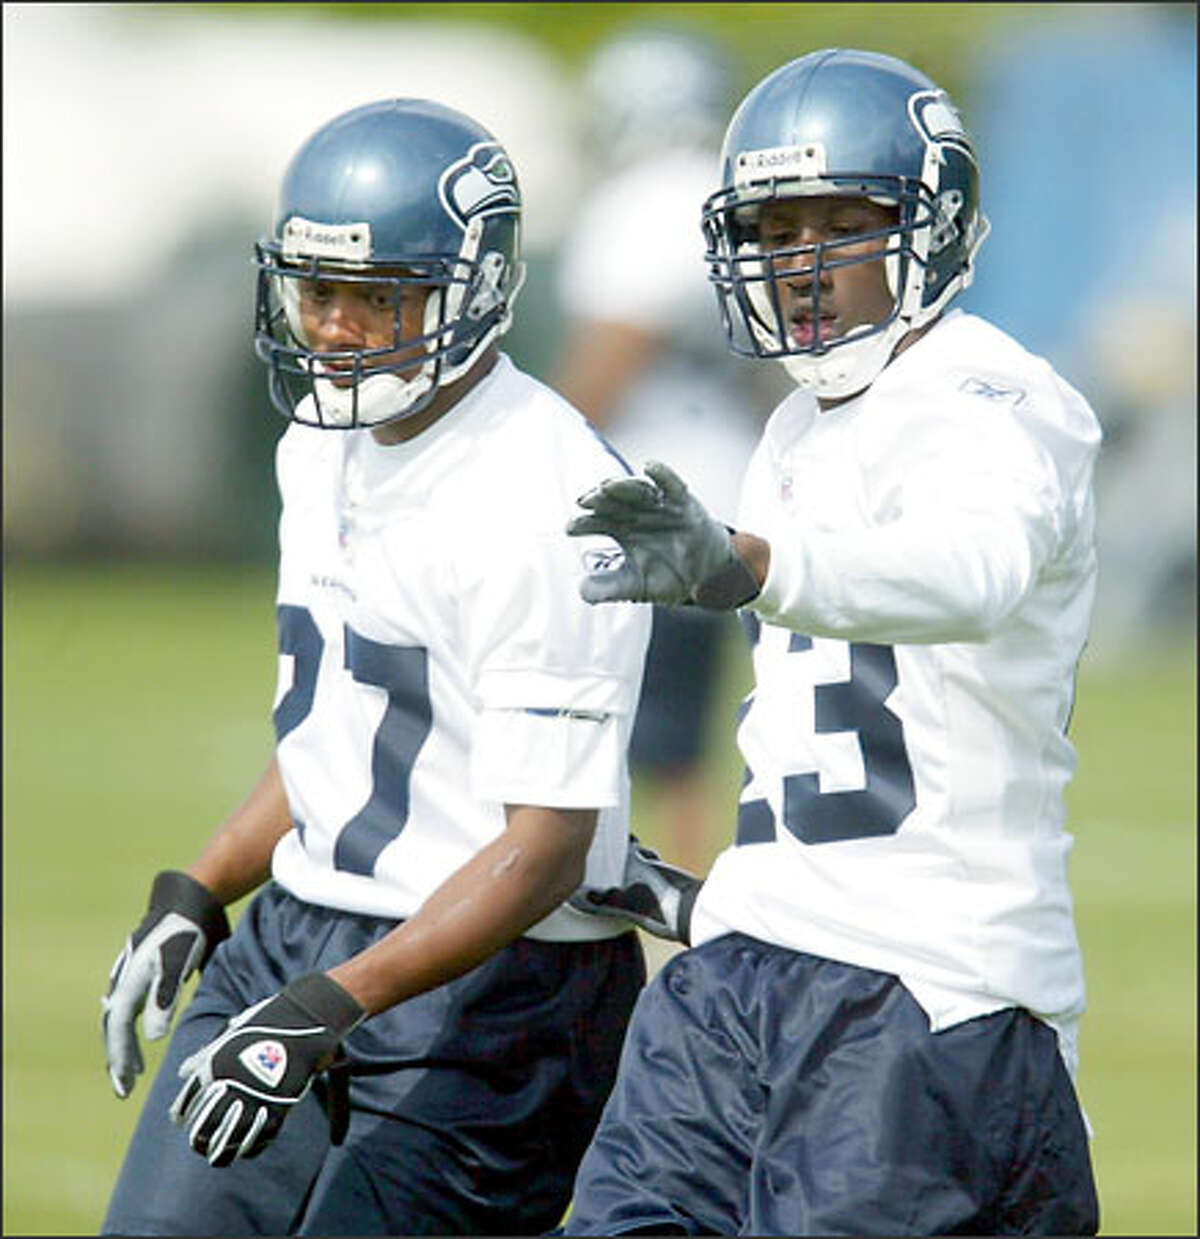 Seattle Seahawks rookie Marcus Trufant goes up against veteran conerback Willie Williams during mini-camp held in Kirkland. Williams signed a one-year contract with the Seahawks Friday, May 2, 2003.